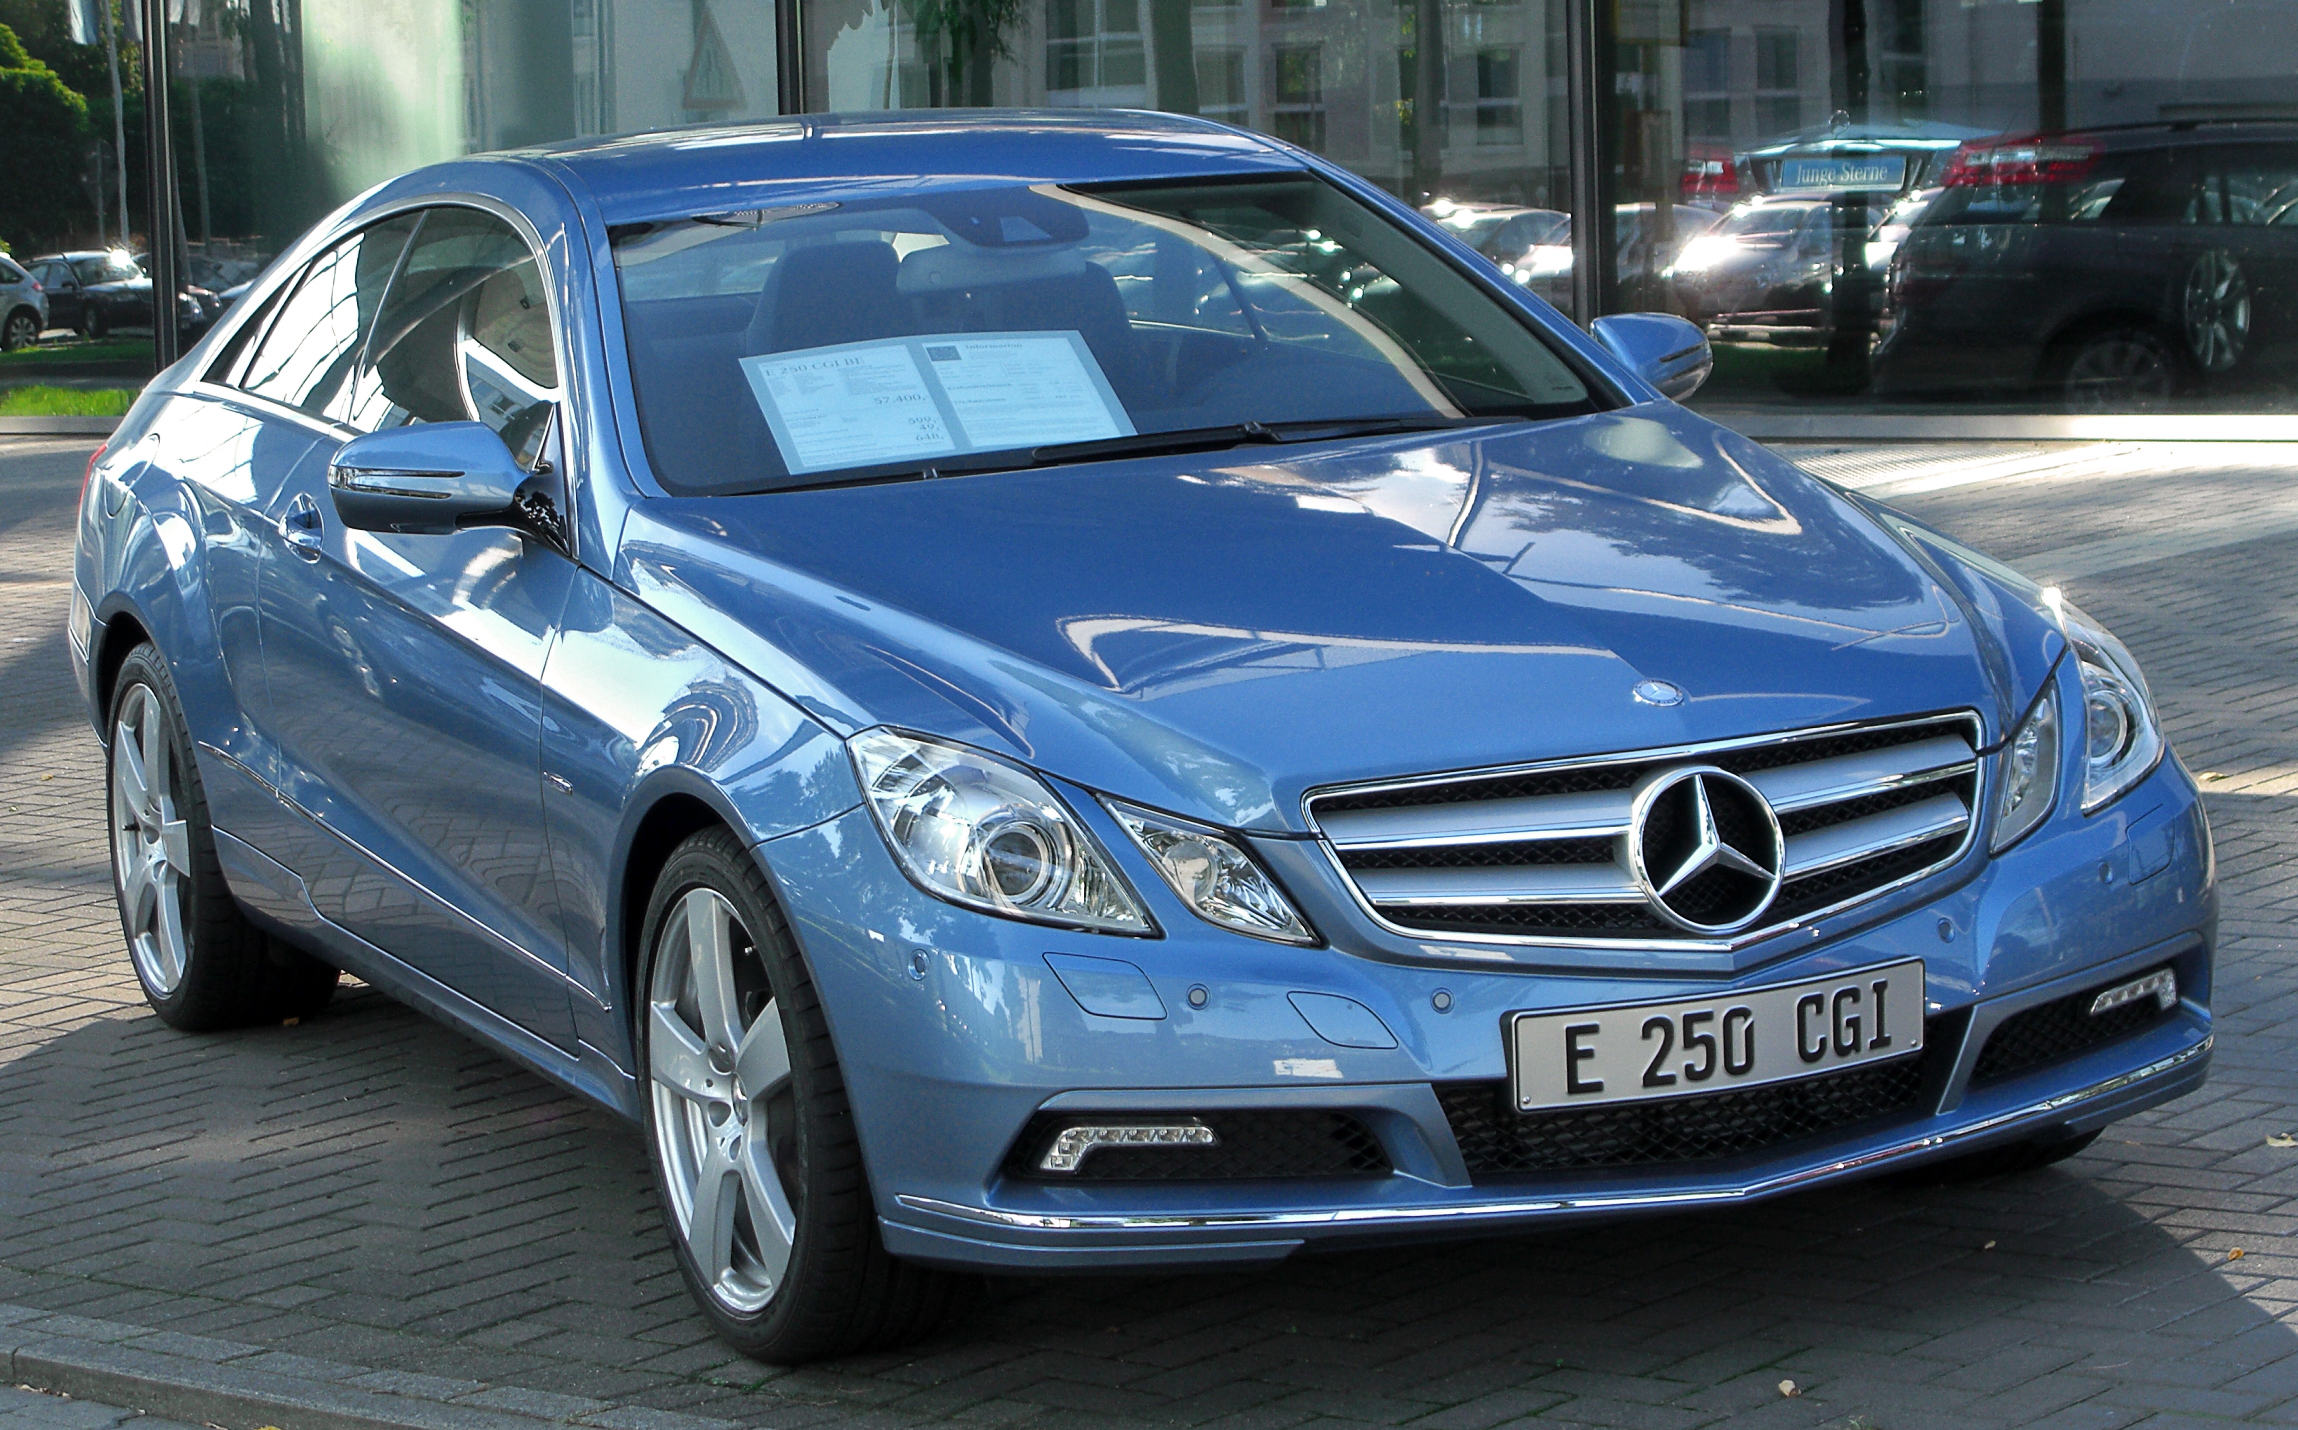 file mercedes e 250 cgi blueefficiency coup c207 front wikimedia commons. Black Bedroom Furniture Sets. Home Design Ideas